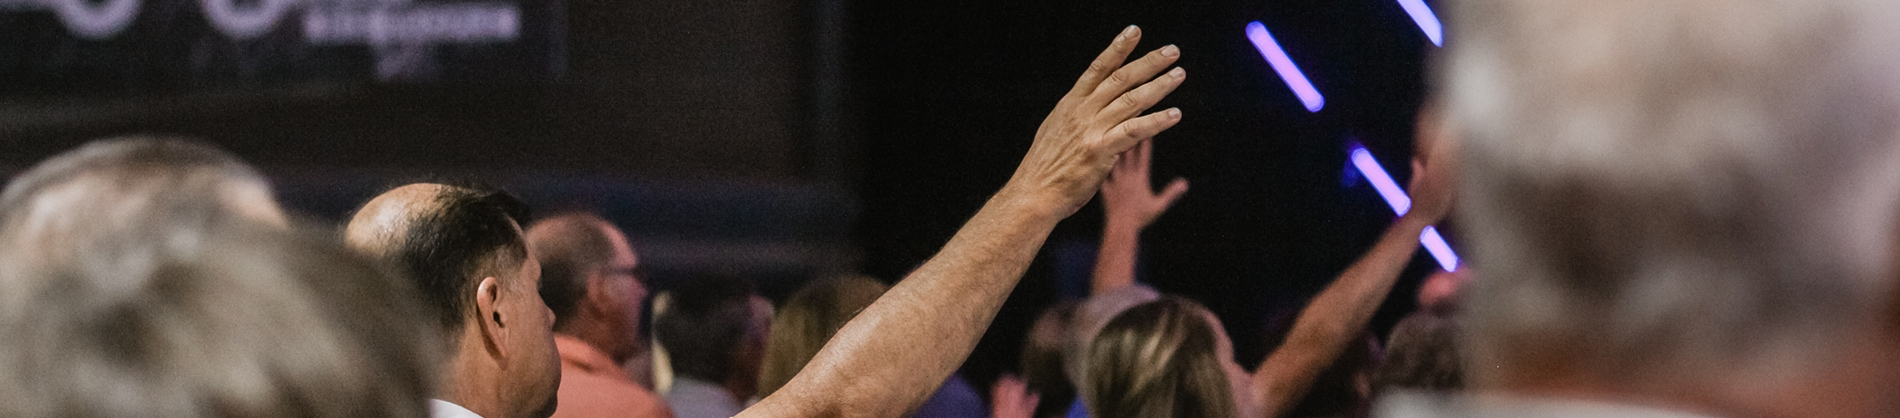 A man worshipping with his hands in the air